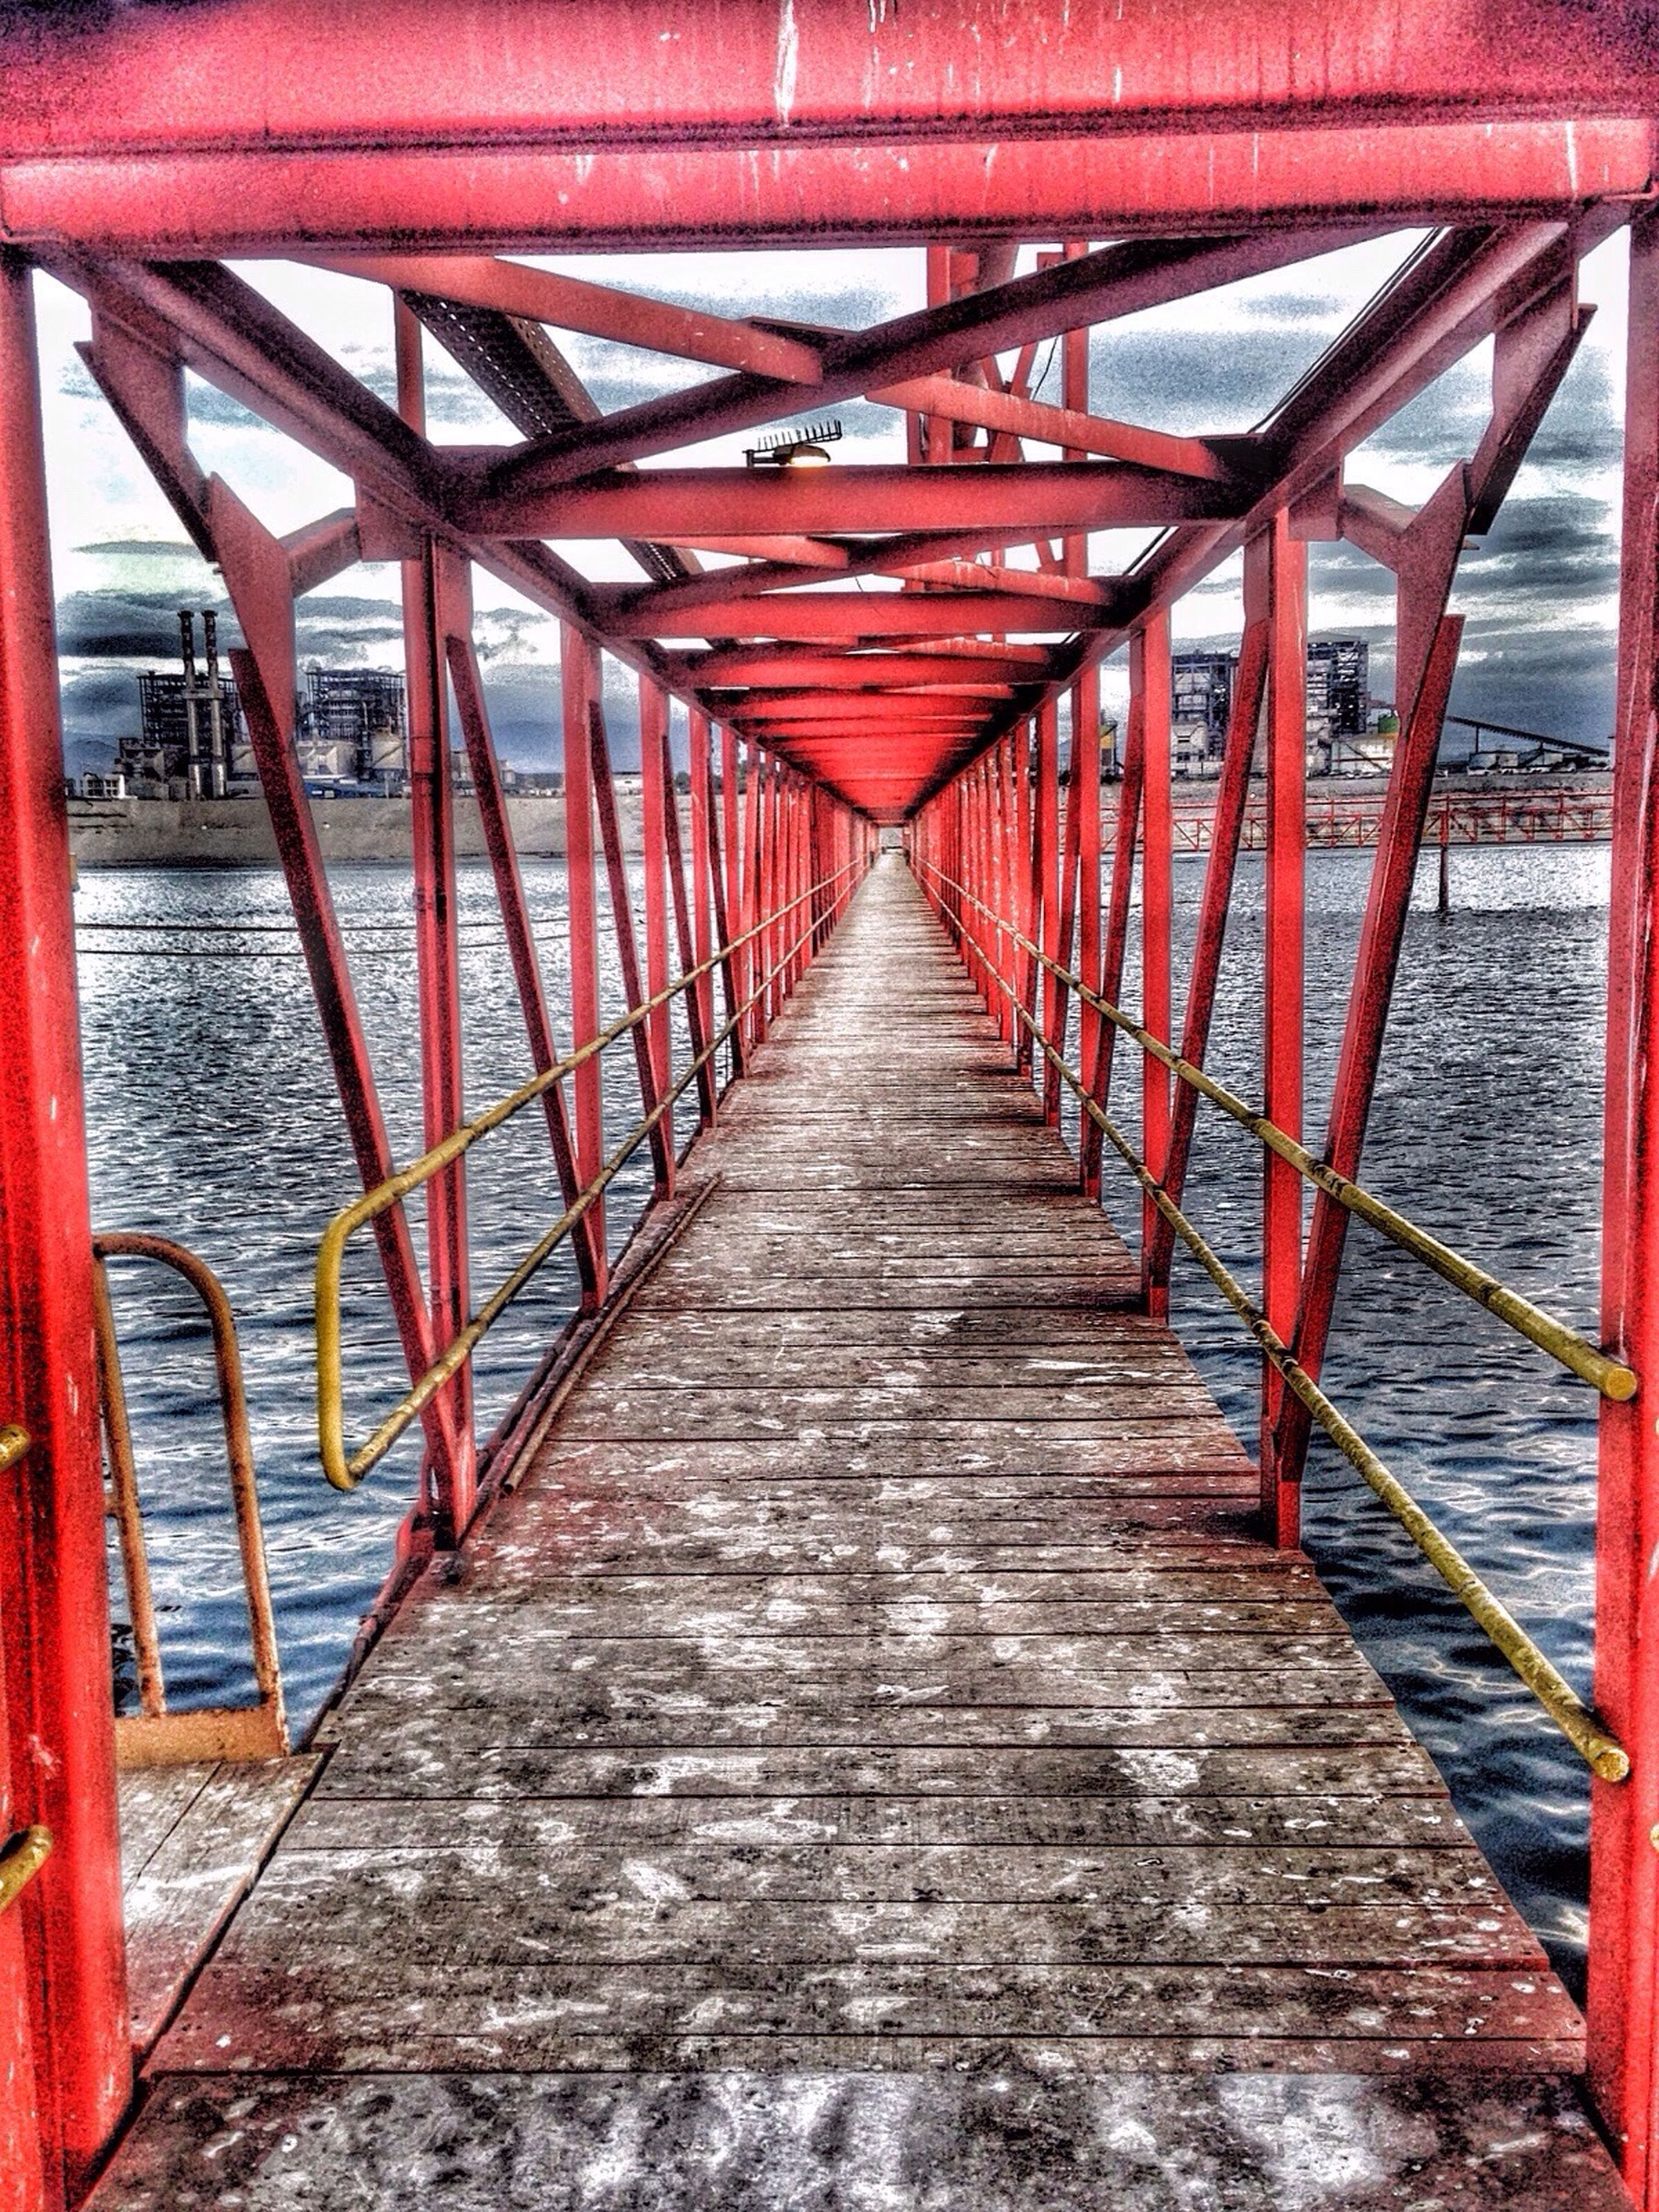 built structure, the way forward, architecture, connection, diminishing perspective, bridge - man made structure, railing, vanishing point, footbridge, red, bridge, long, transportation, wood - material, metal, walkway, day, no people, outdoors, narrow